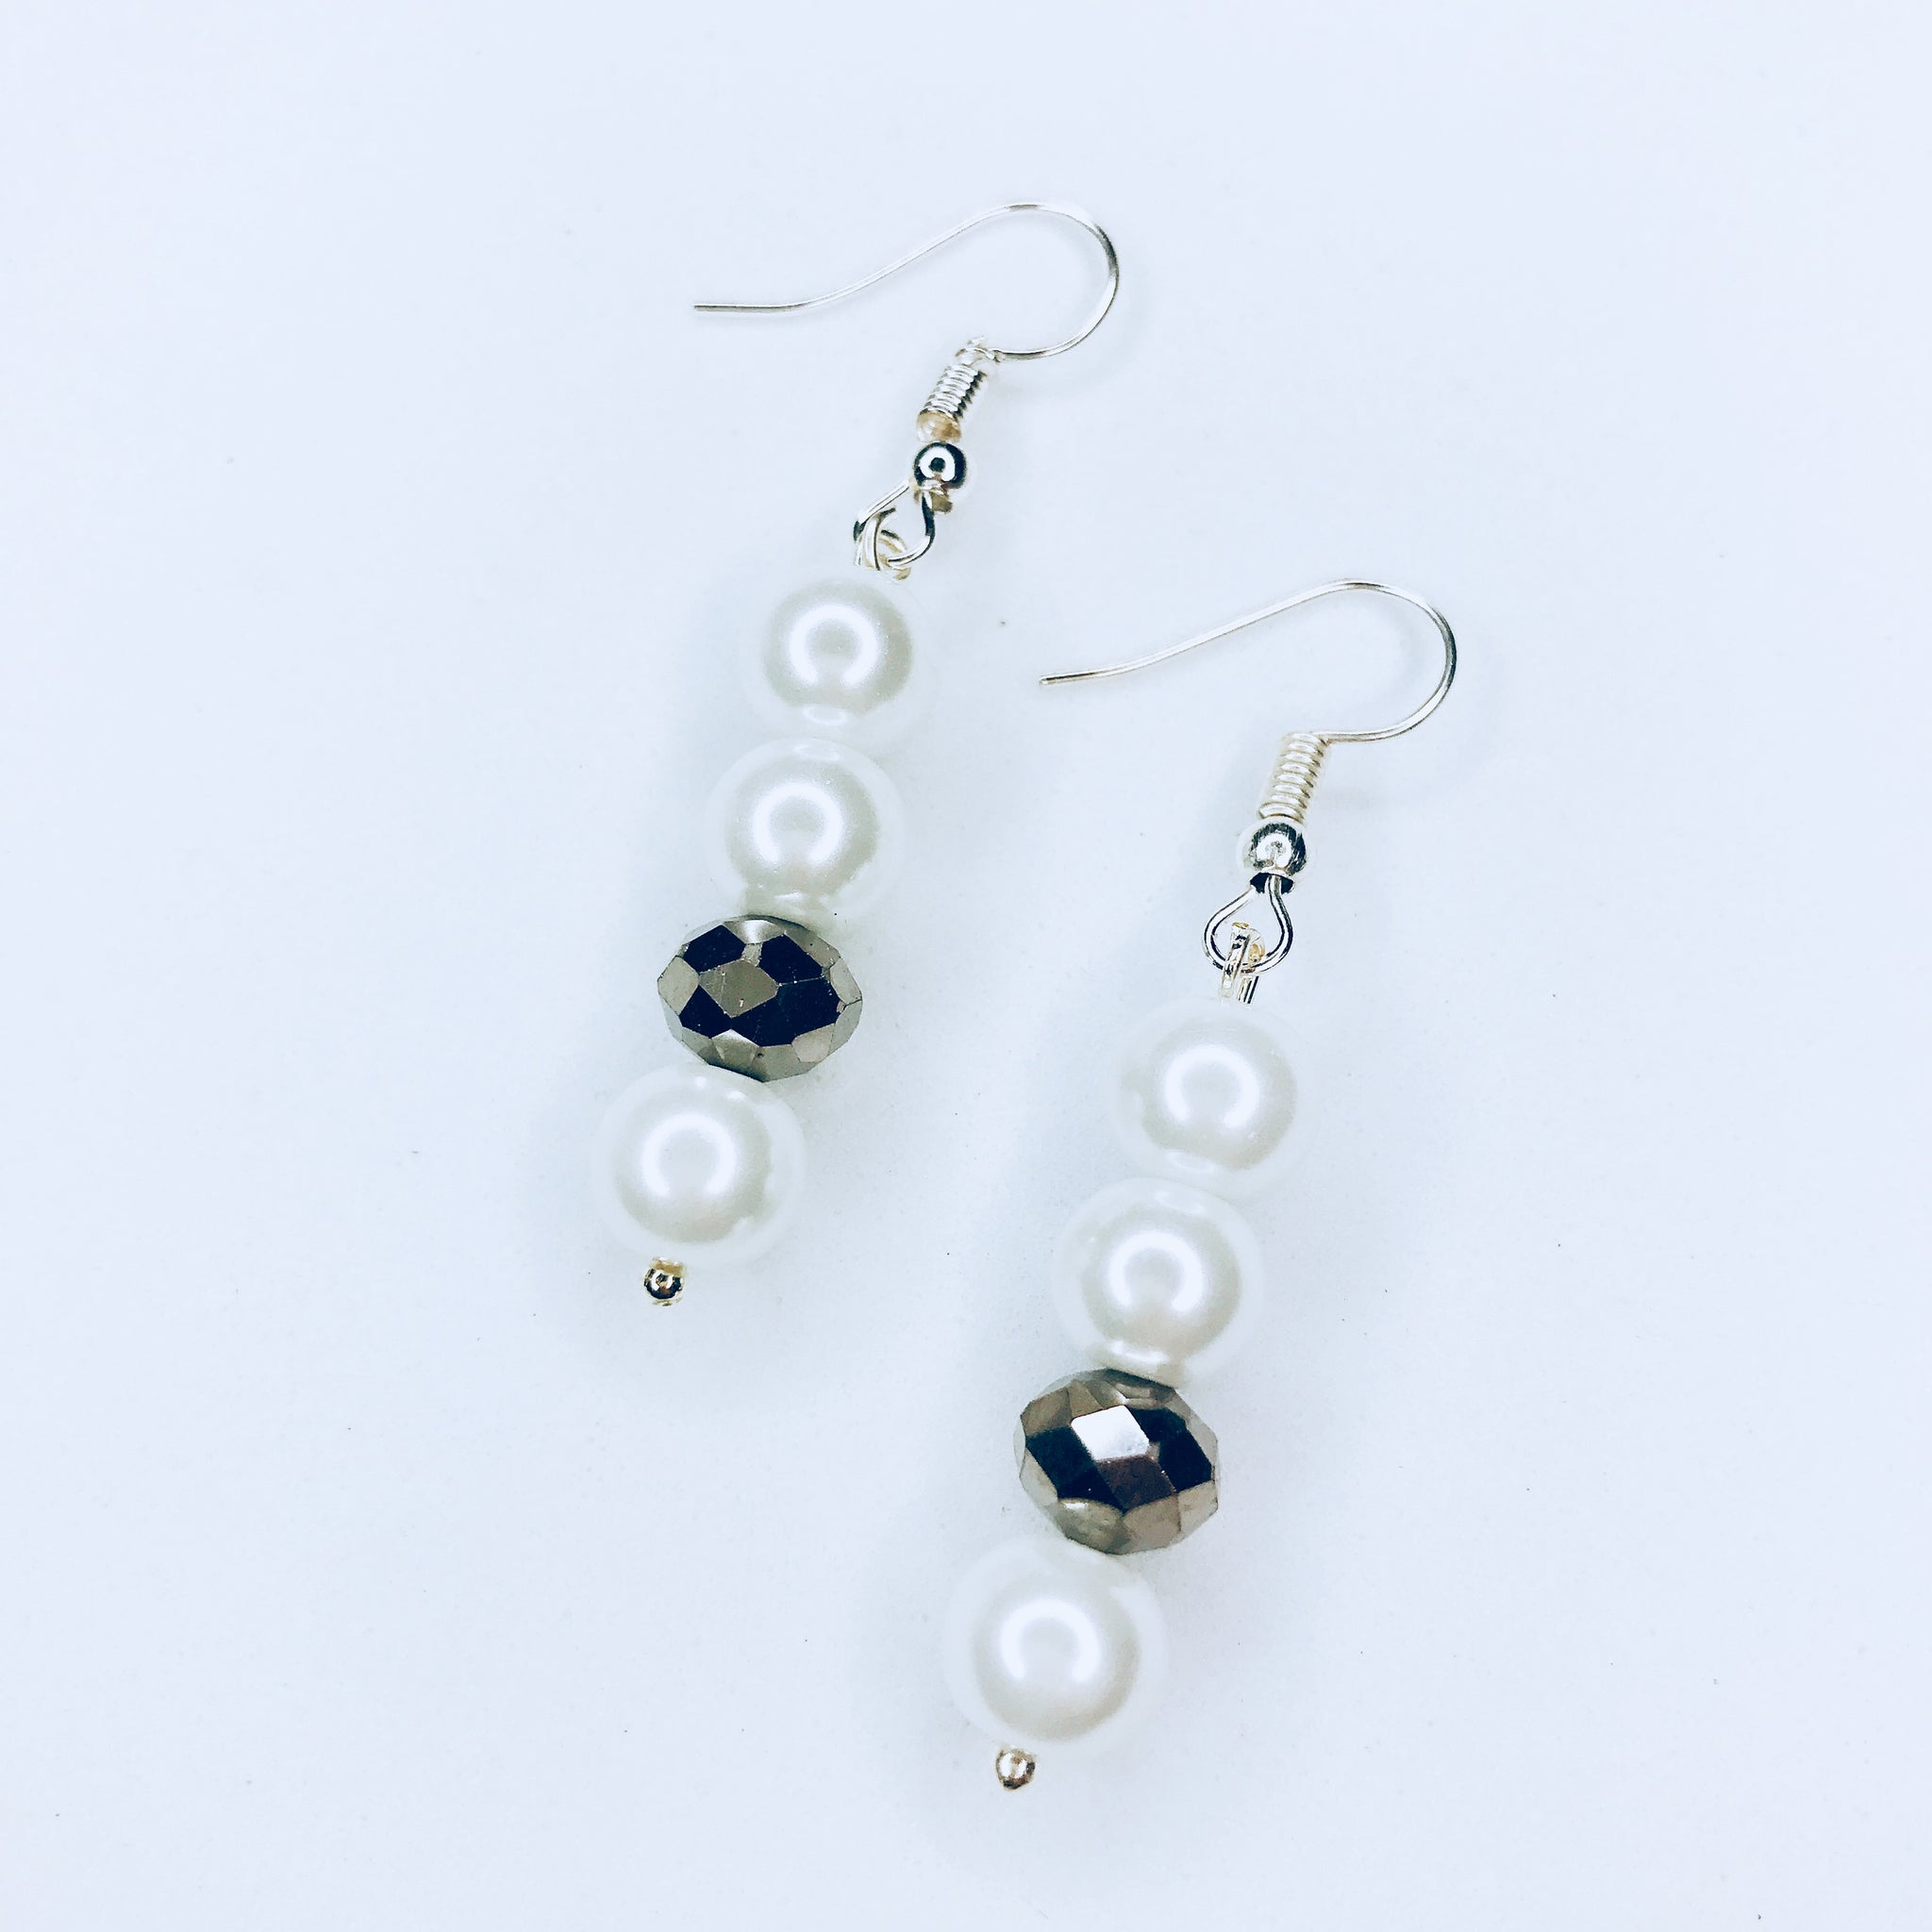 Joli - chic silver and white bead earrings.